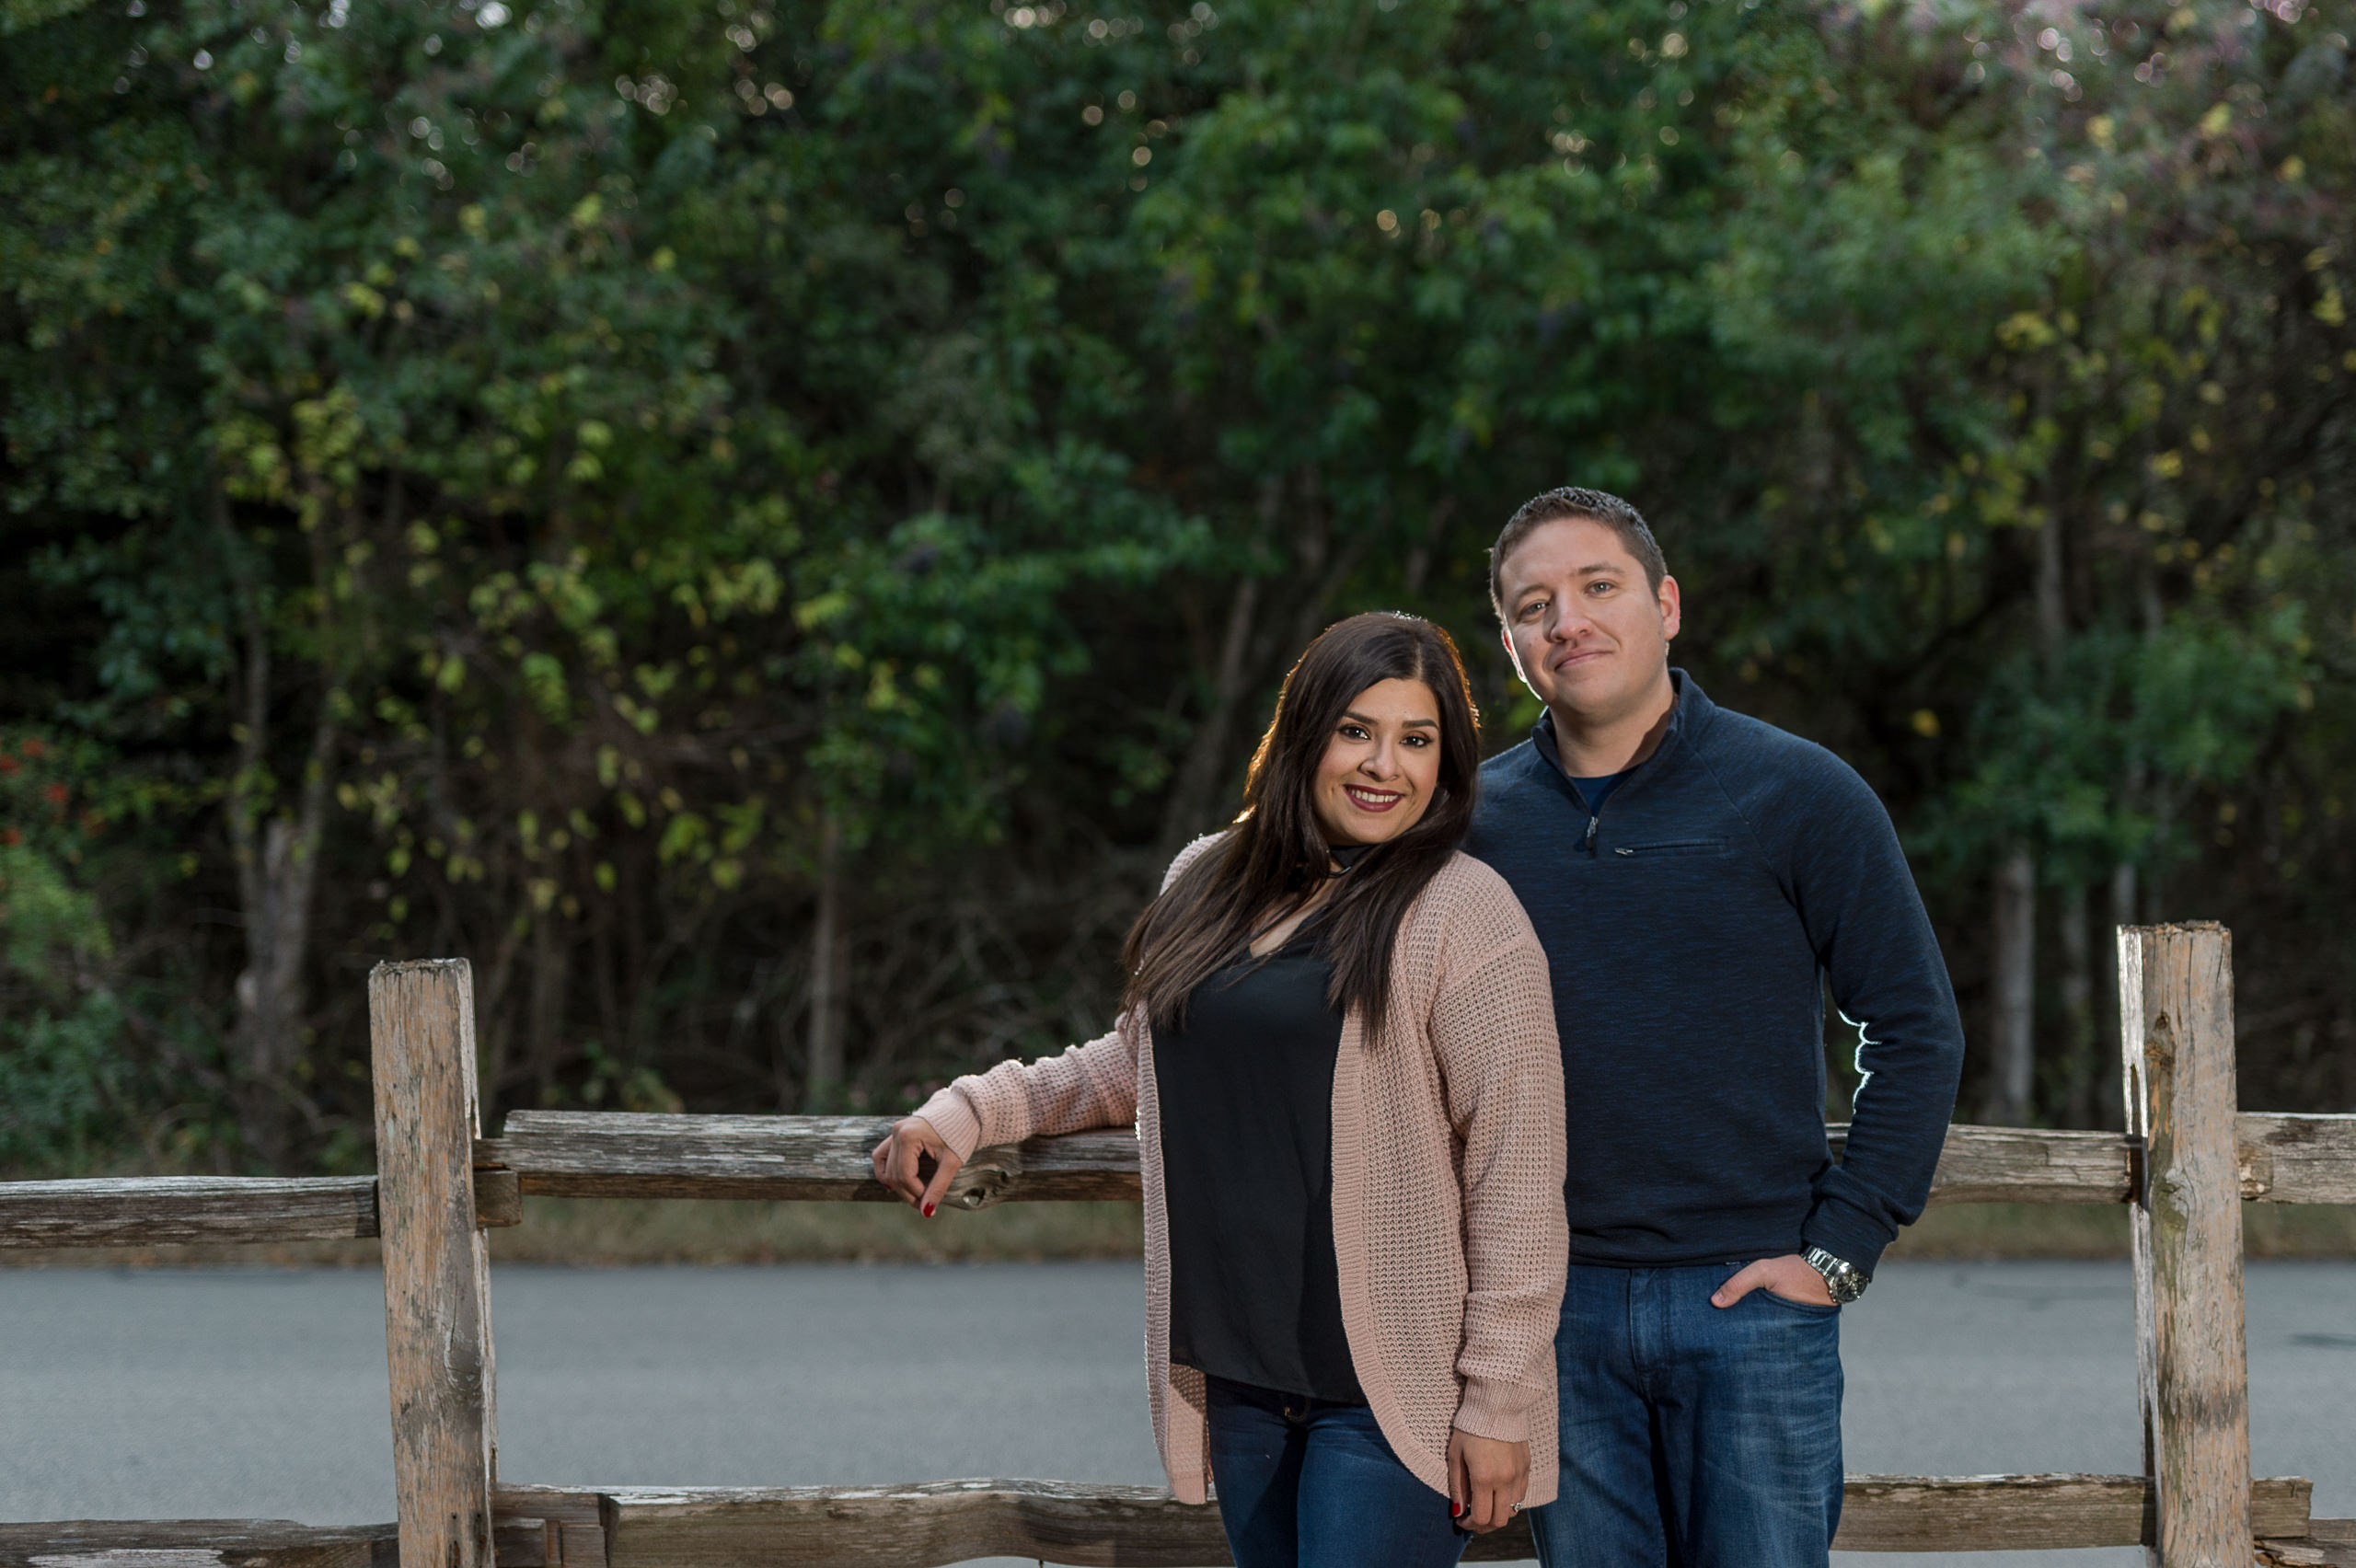 denman-estate-engagement-session-san-antonio-wedding-photographers-_4S24581-Edit